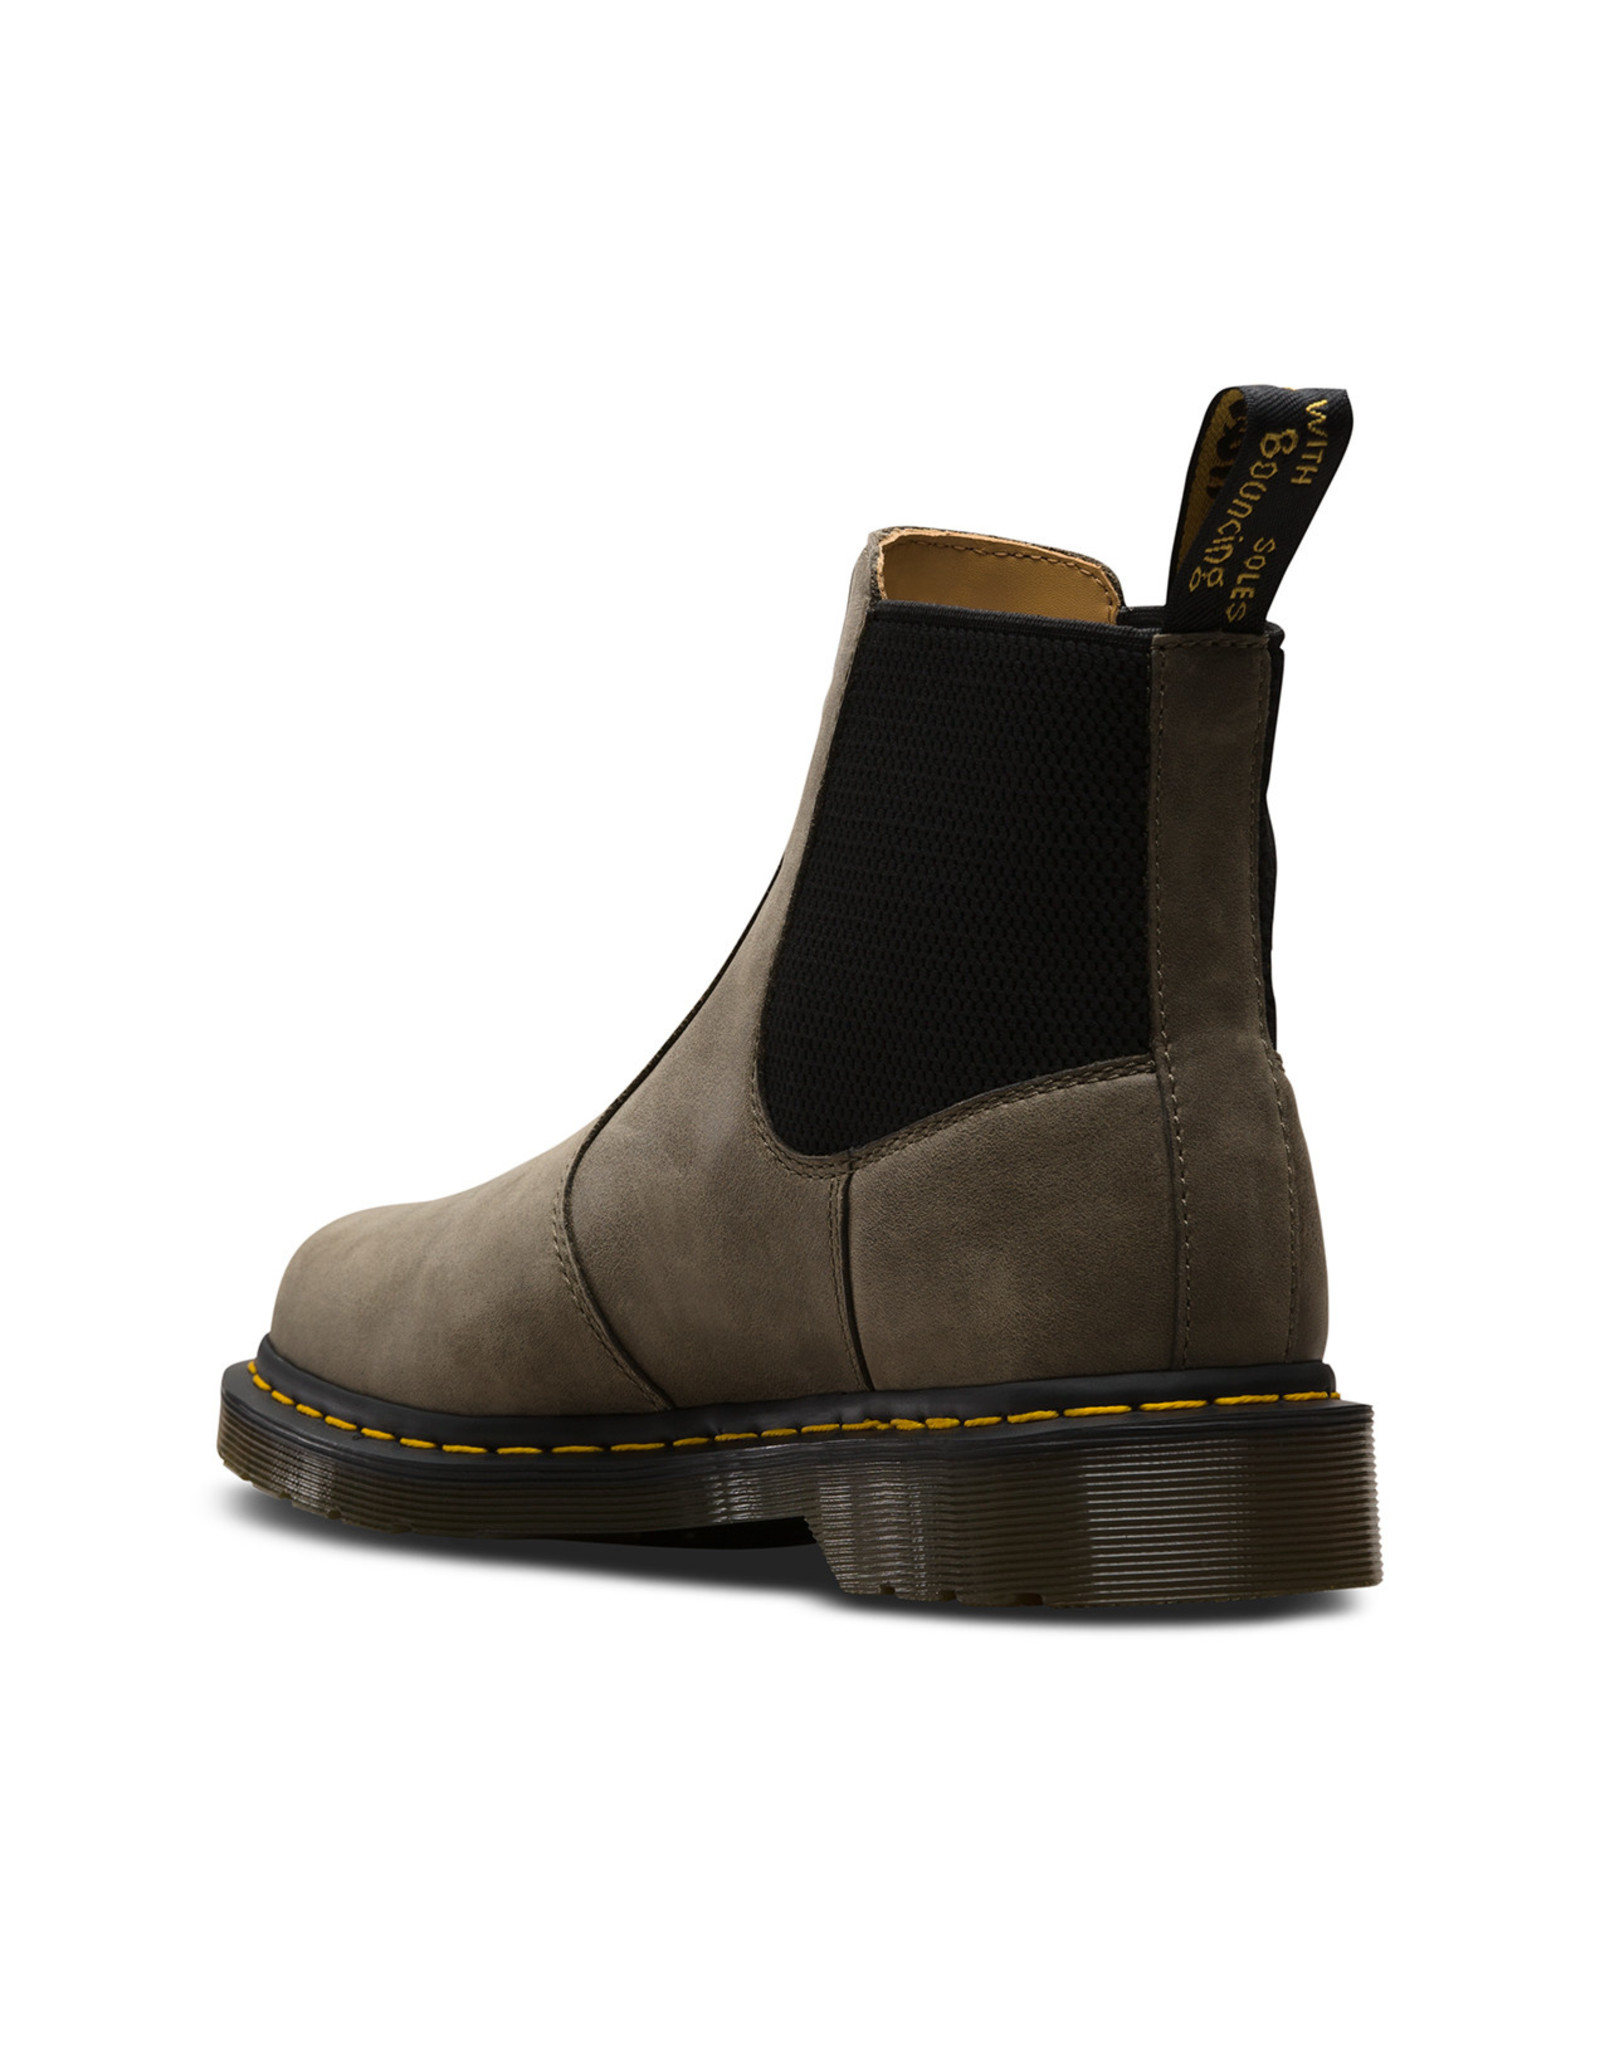 DR. MARTENS 2976 HARDY DUSTY OLIVE E4DUS-R24538305